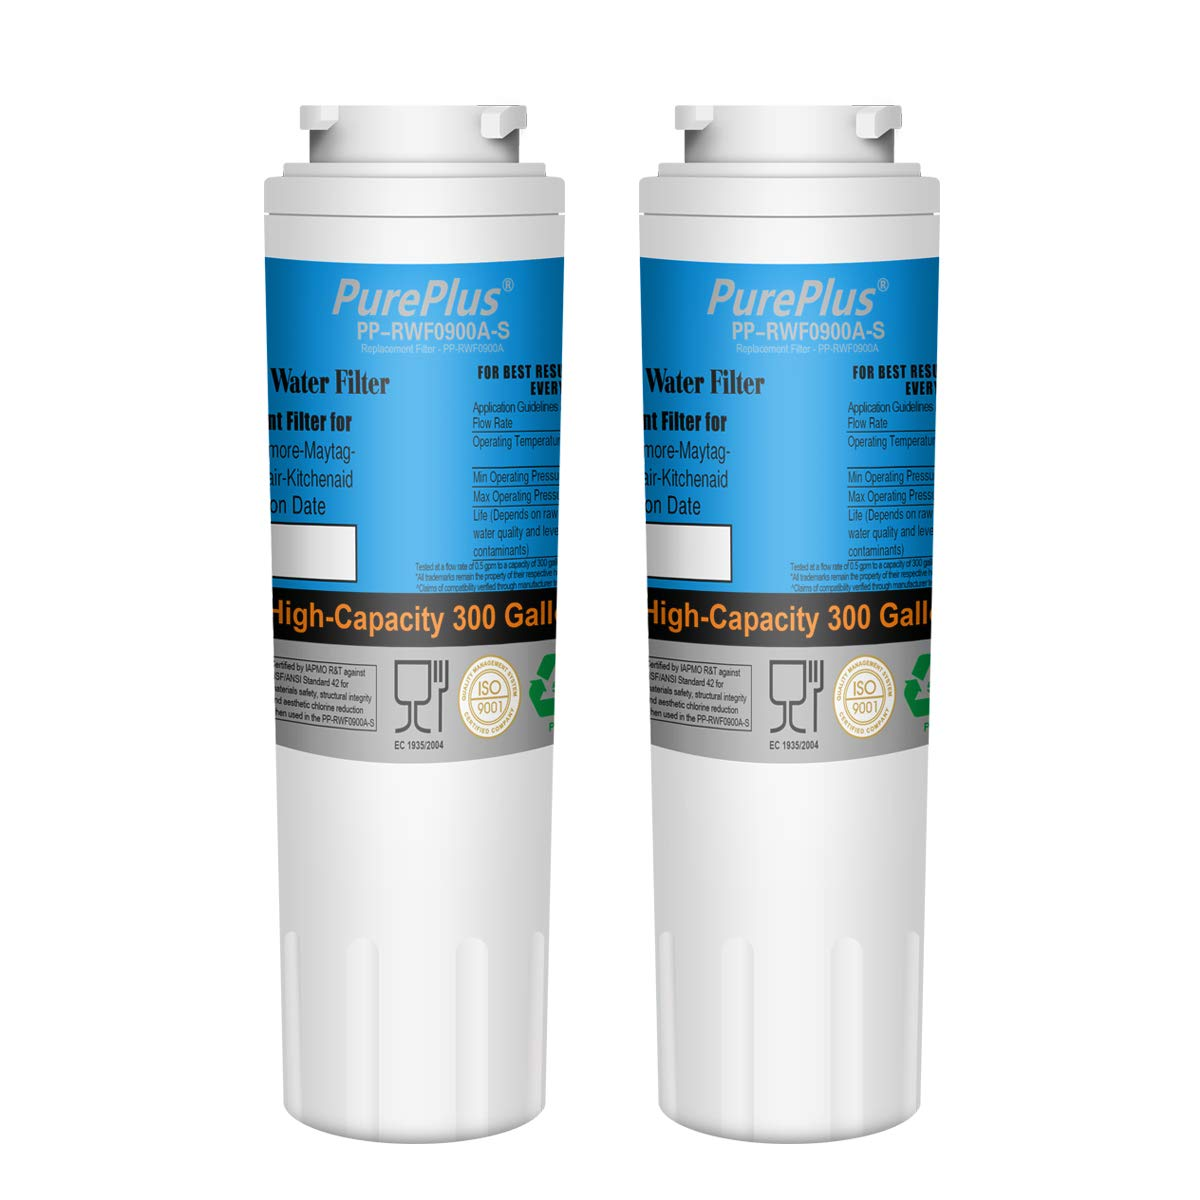 PurePlus UKF8001 Refrigerator Water Filter, Replacement for Maytag UKF8001P, PUR, Jenn-Air, Filter 4, 4396395, UKF8001AXX, UKF8001AXX-200, UKF8001AXX-750, 469006 (Pack of 2)